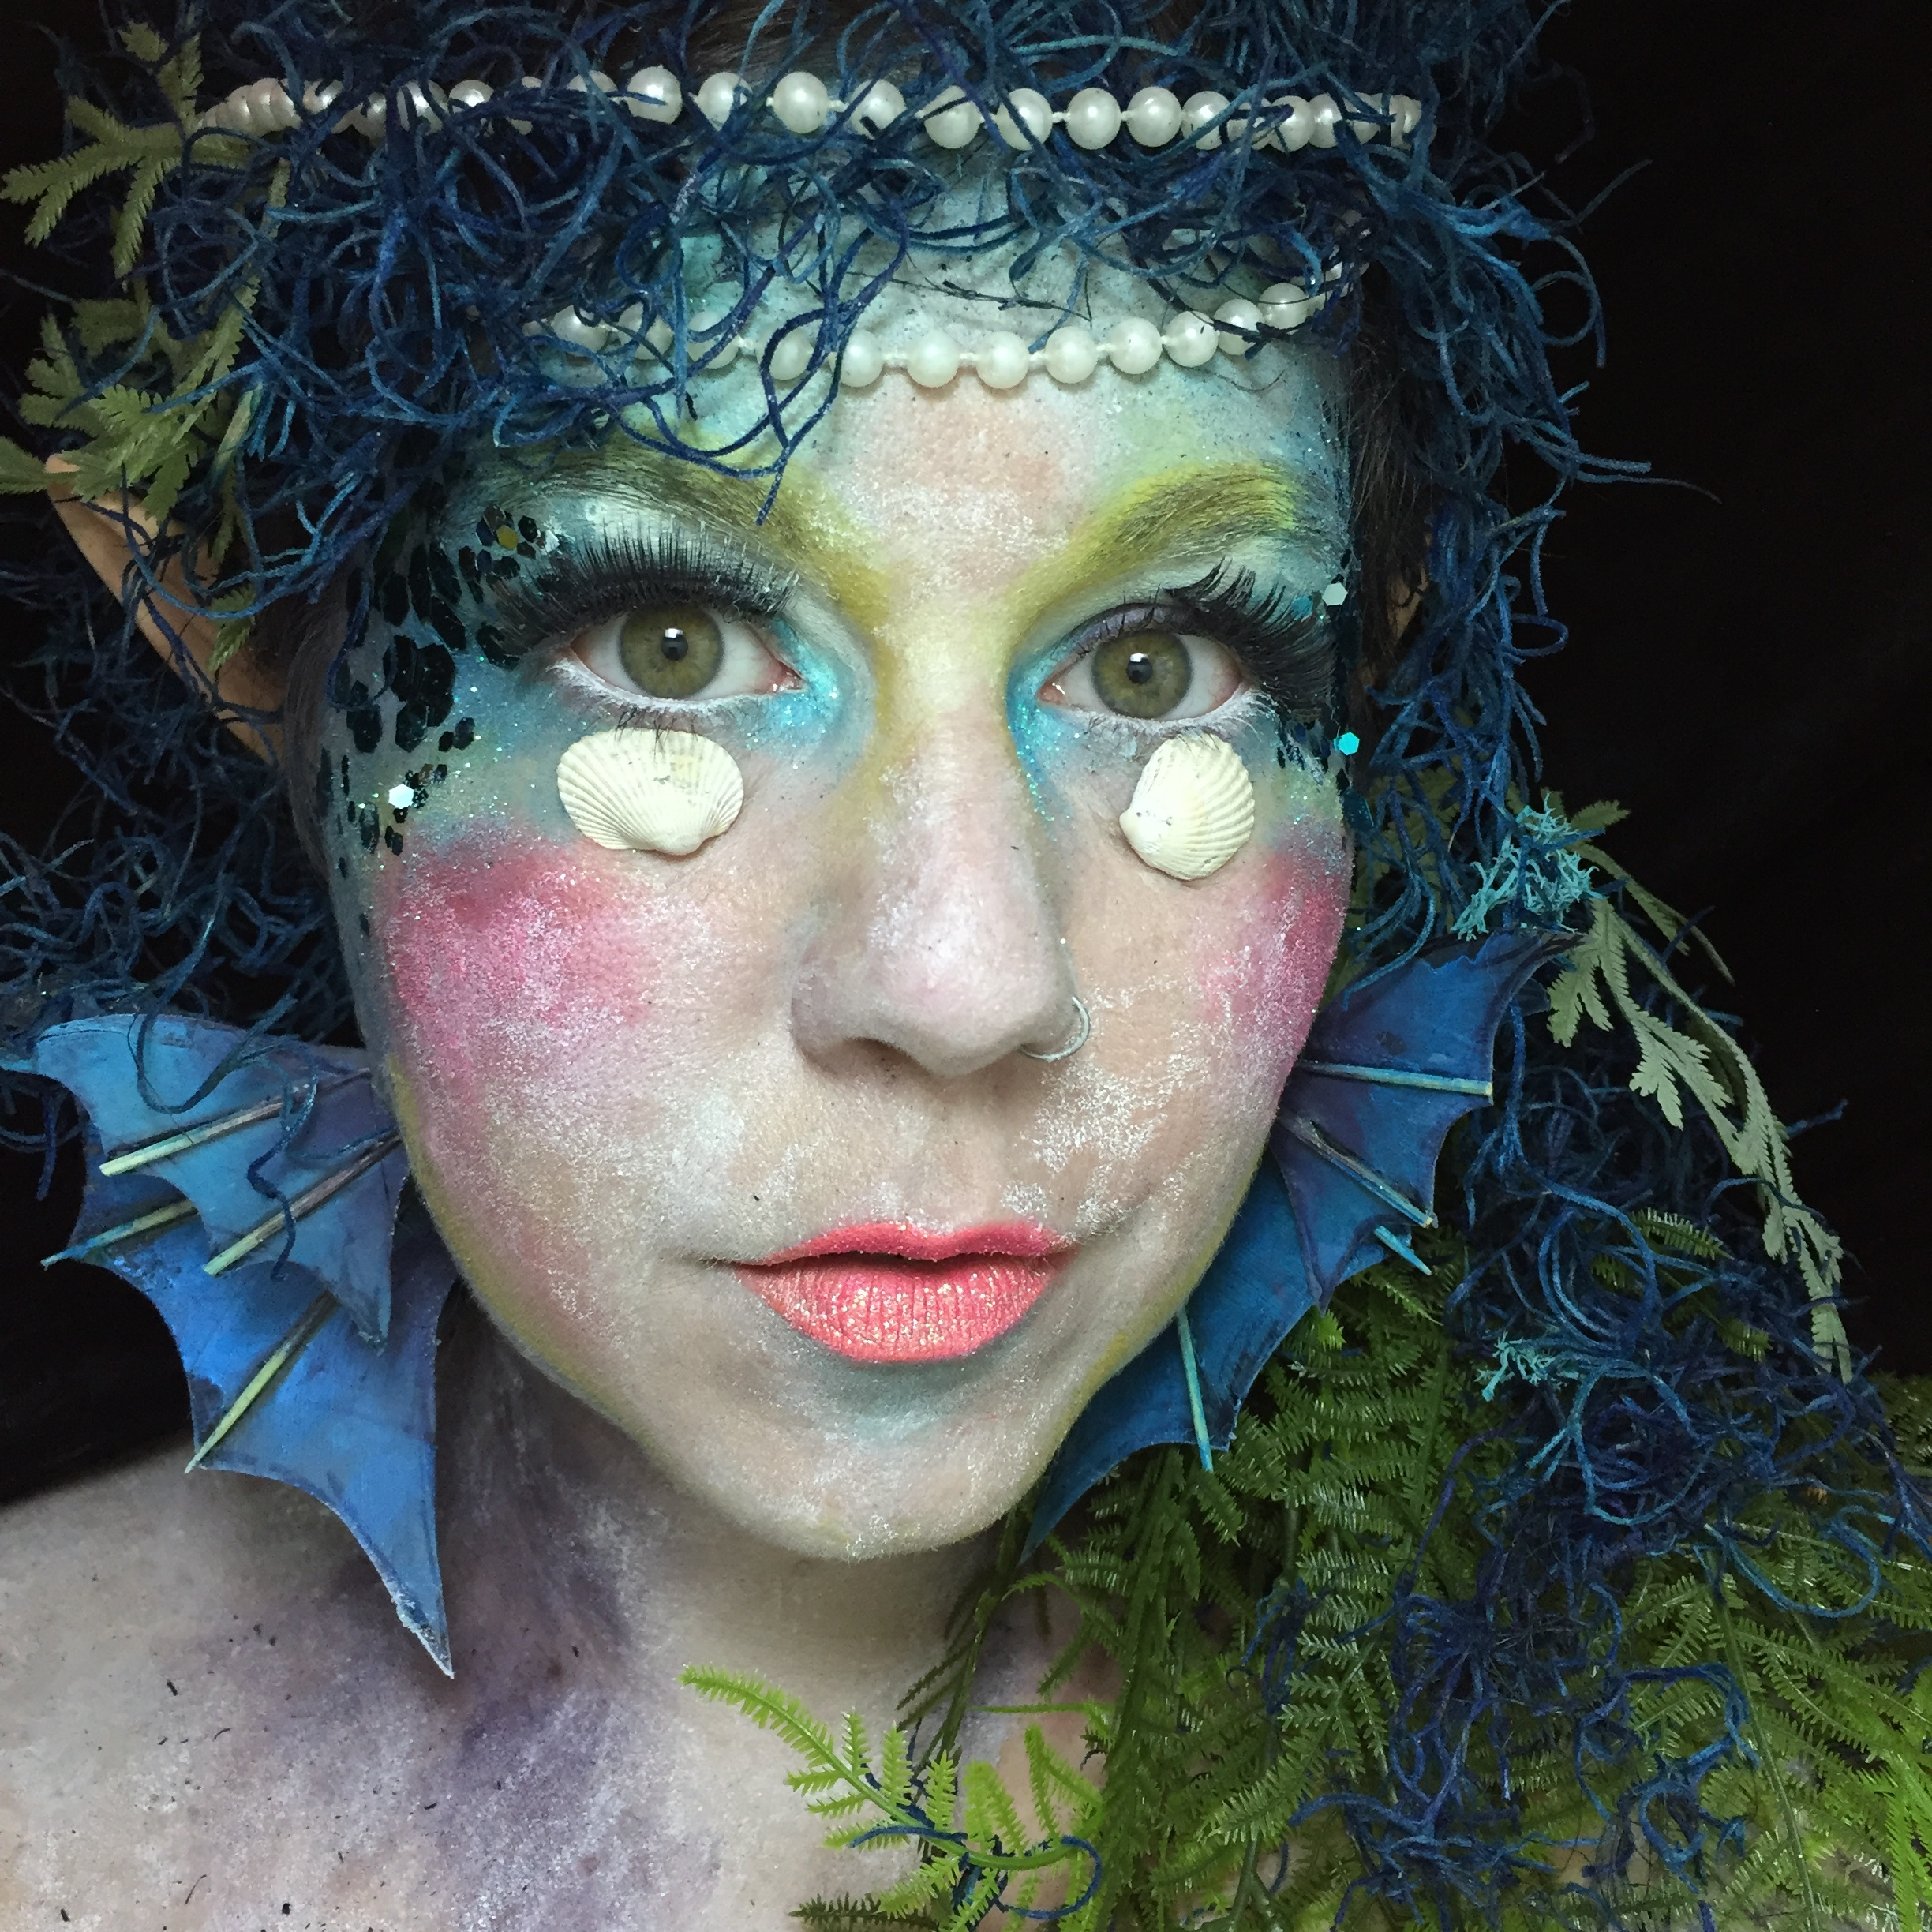 Dupe Magazine 31 Days of Makeup Challenge //2017   Day 24: Under the Sea